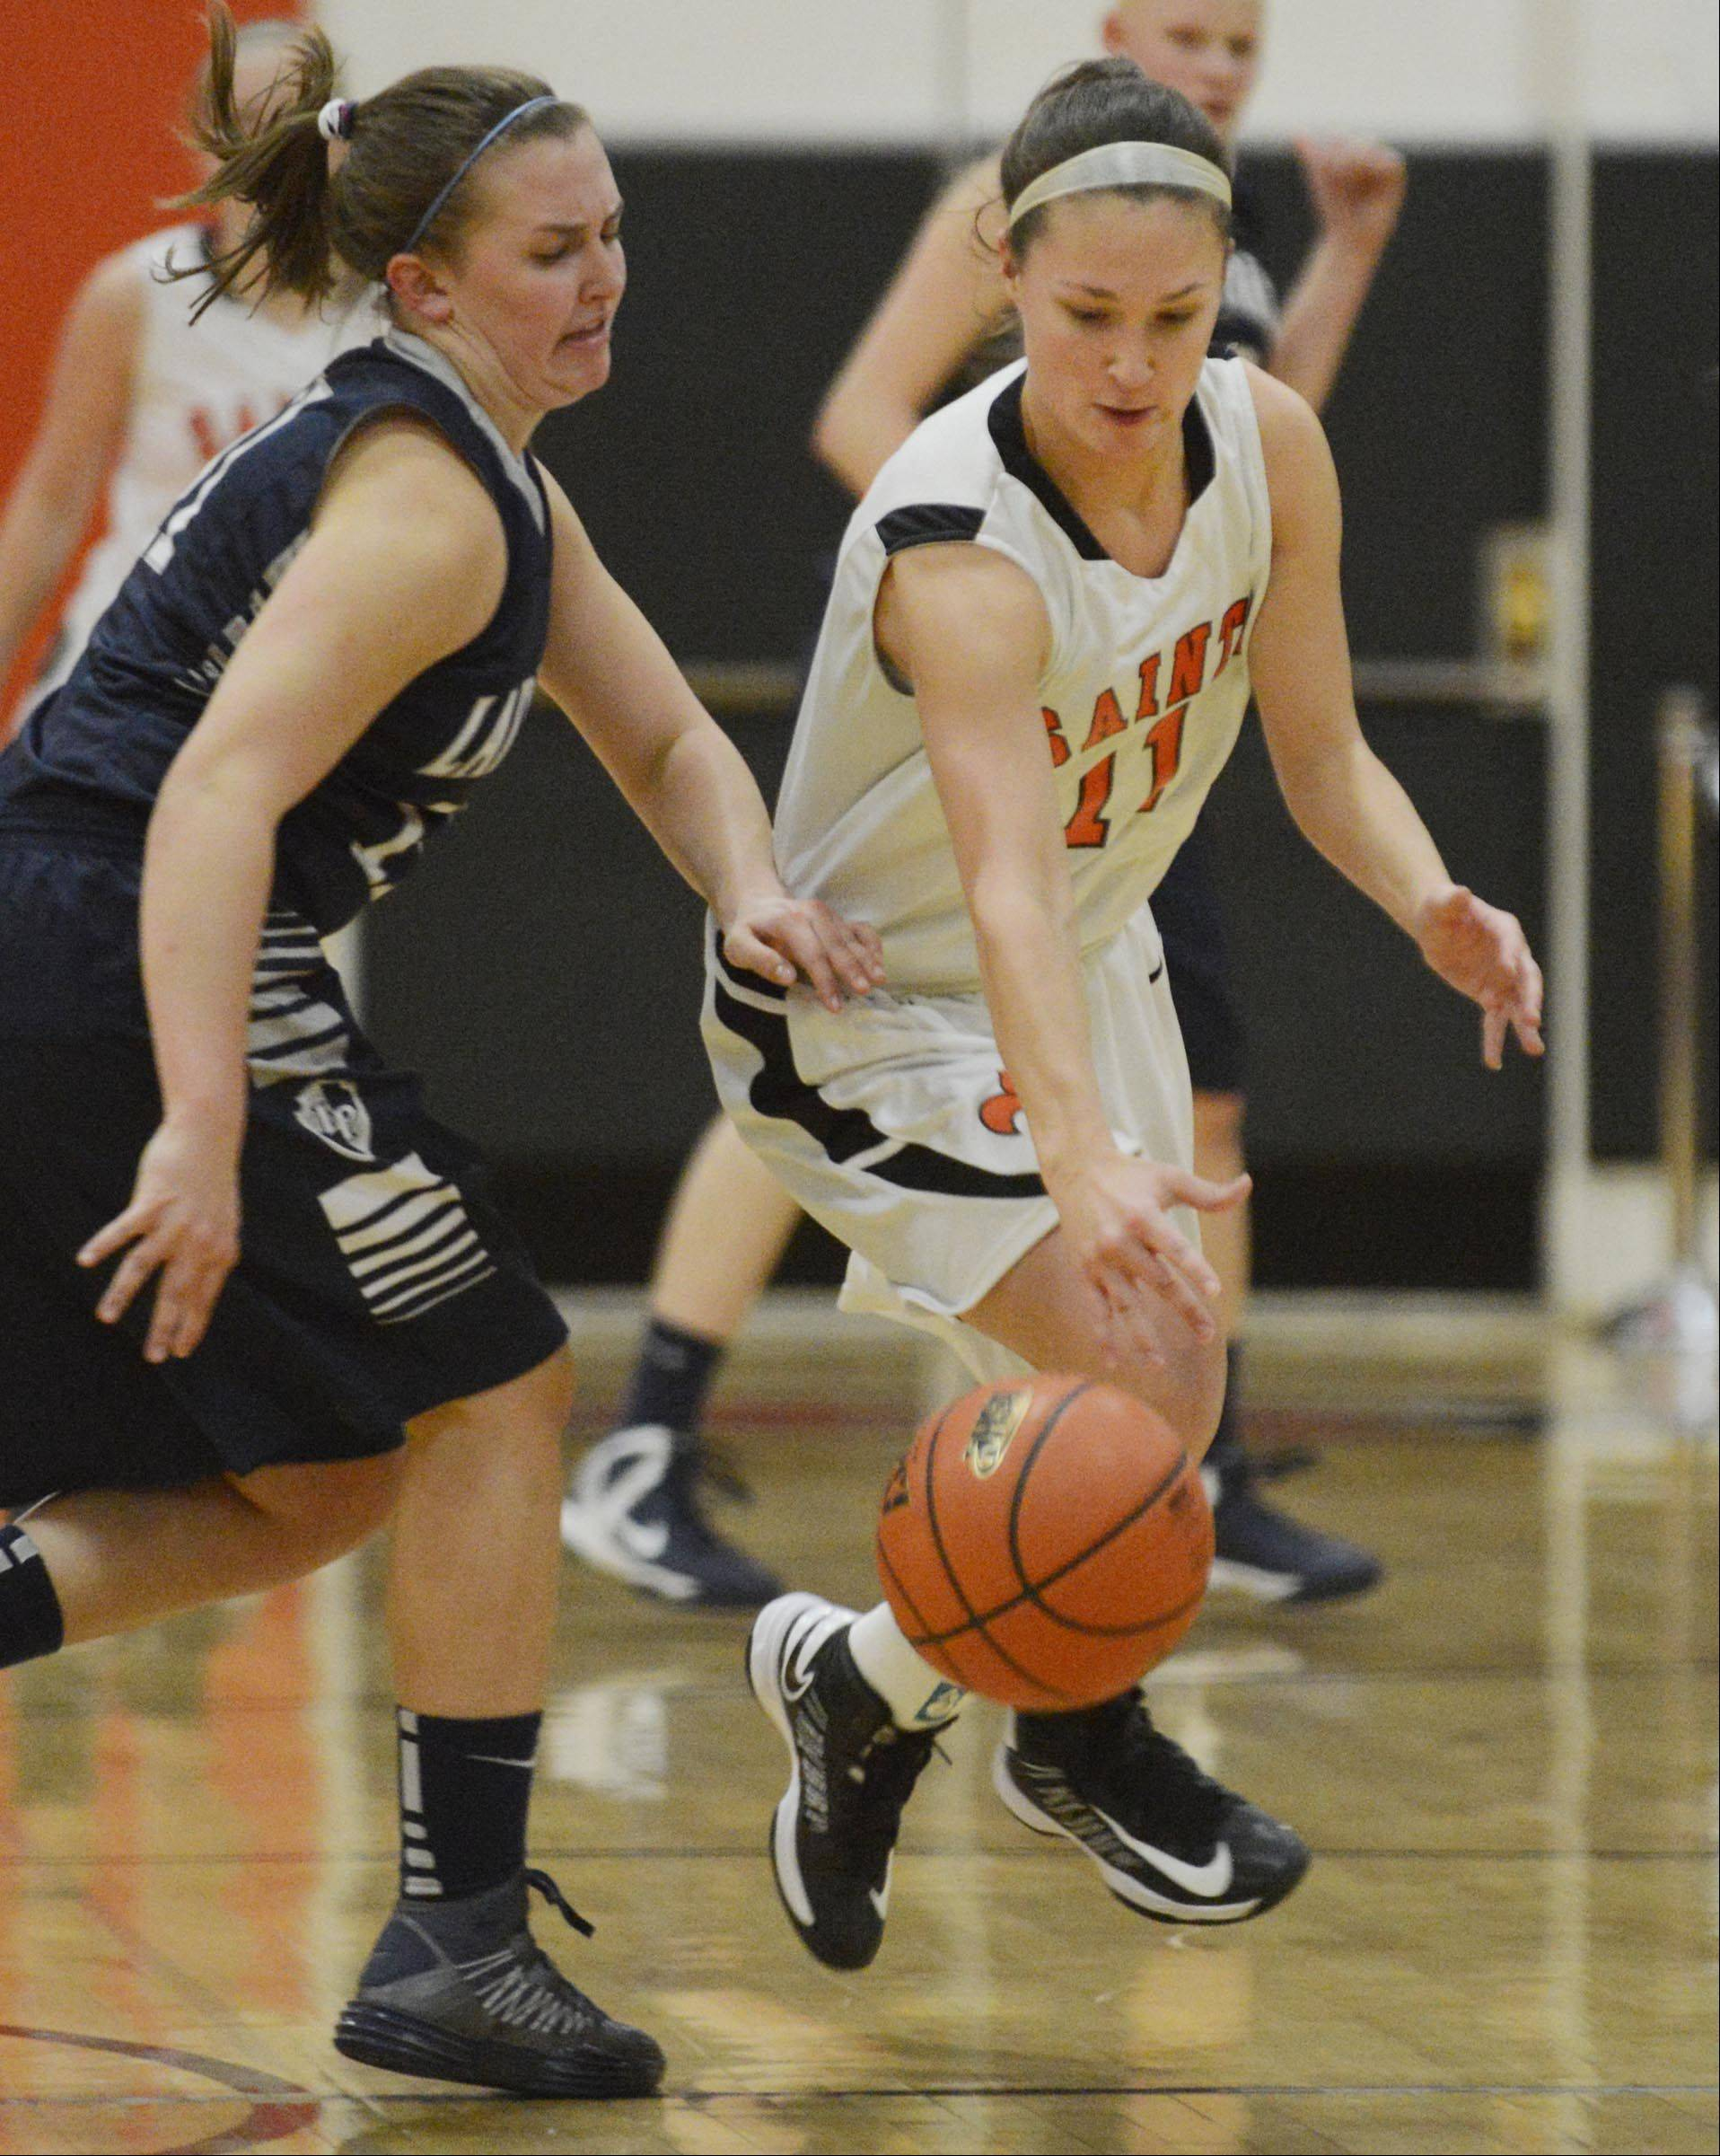 St. Charles East's Carly Pottle steals the ball from Lake Park's Emily Duckhorn Monday in St. Charles.